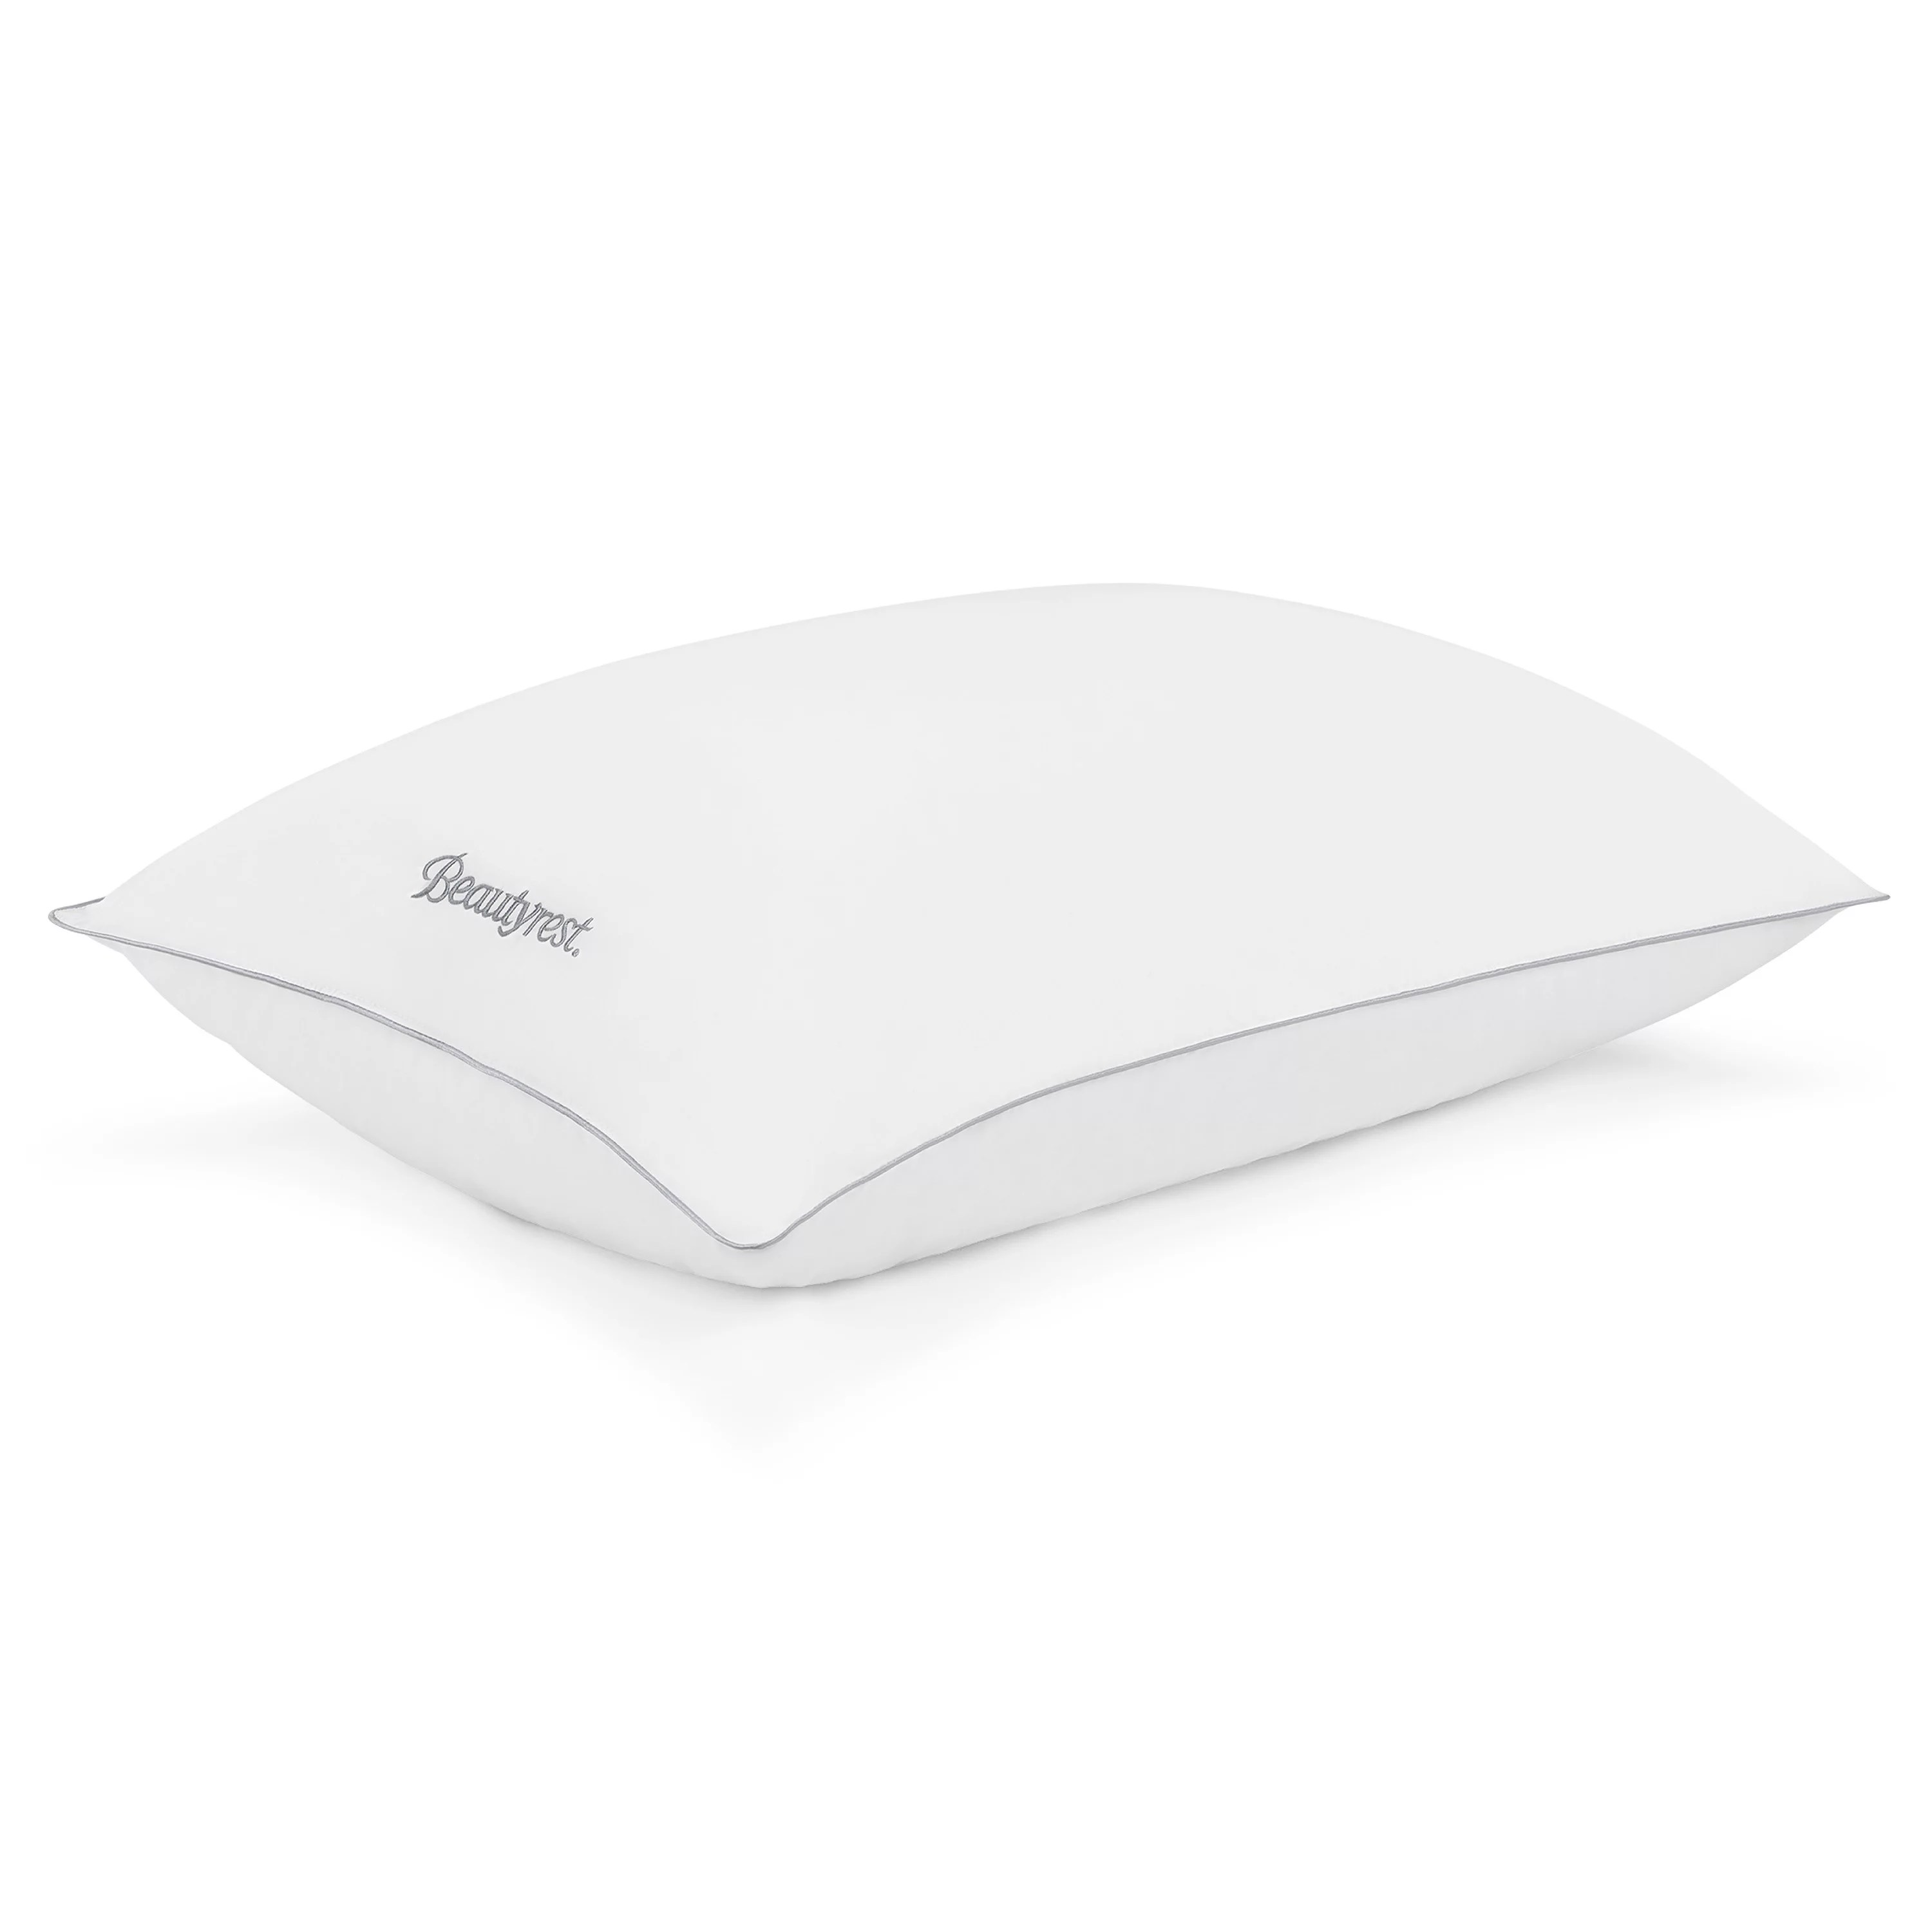 beautyrest silver 300tc naturally cool pillow in multiple sizes